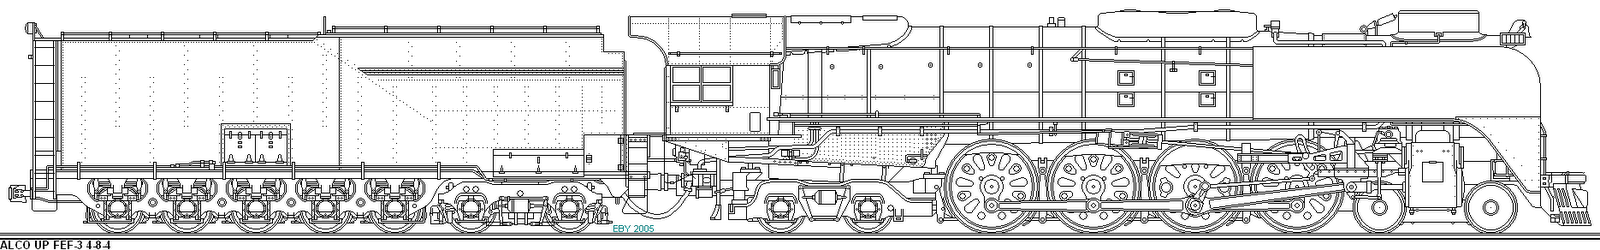 union pacific train coloring pages train engine coloring page color luna union pages train coloring pacific